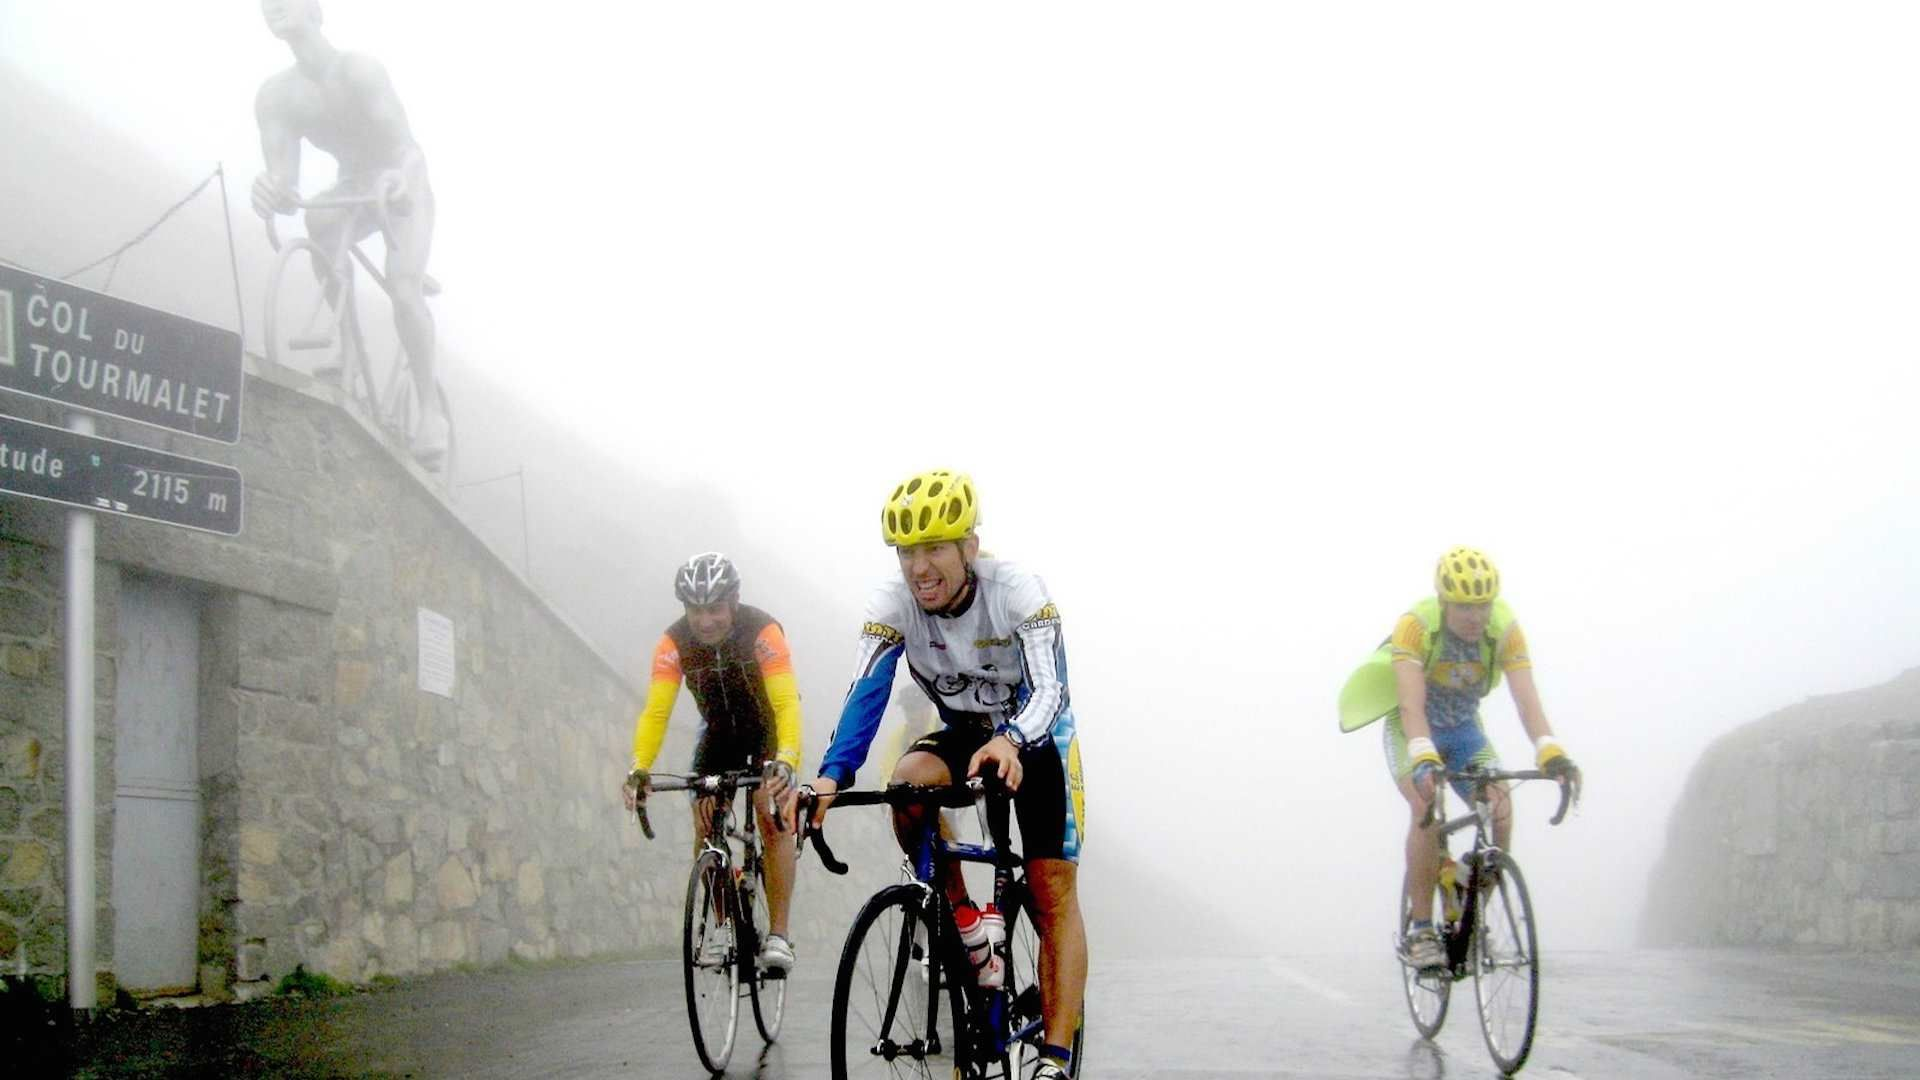 From Barcelona to Le coul du Tourmalet. Tig'See.com - A social way to plan your next vacation